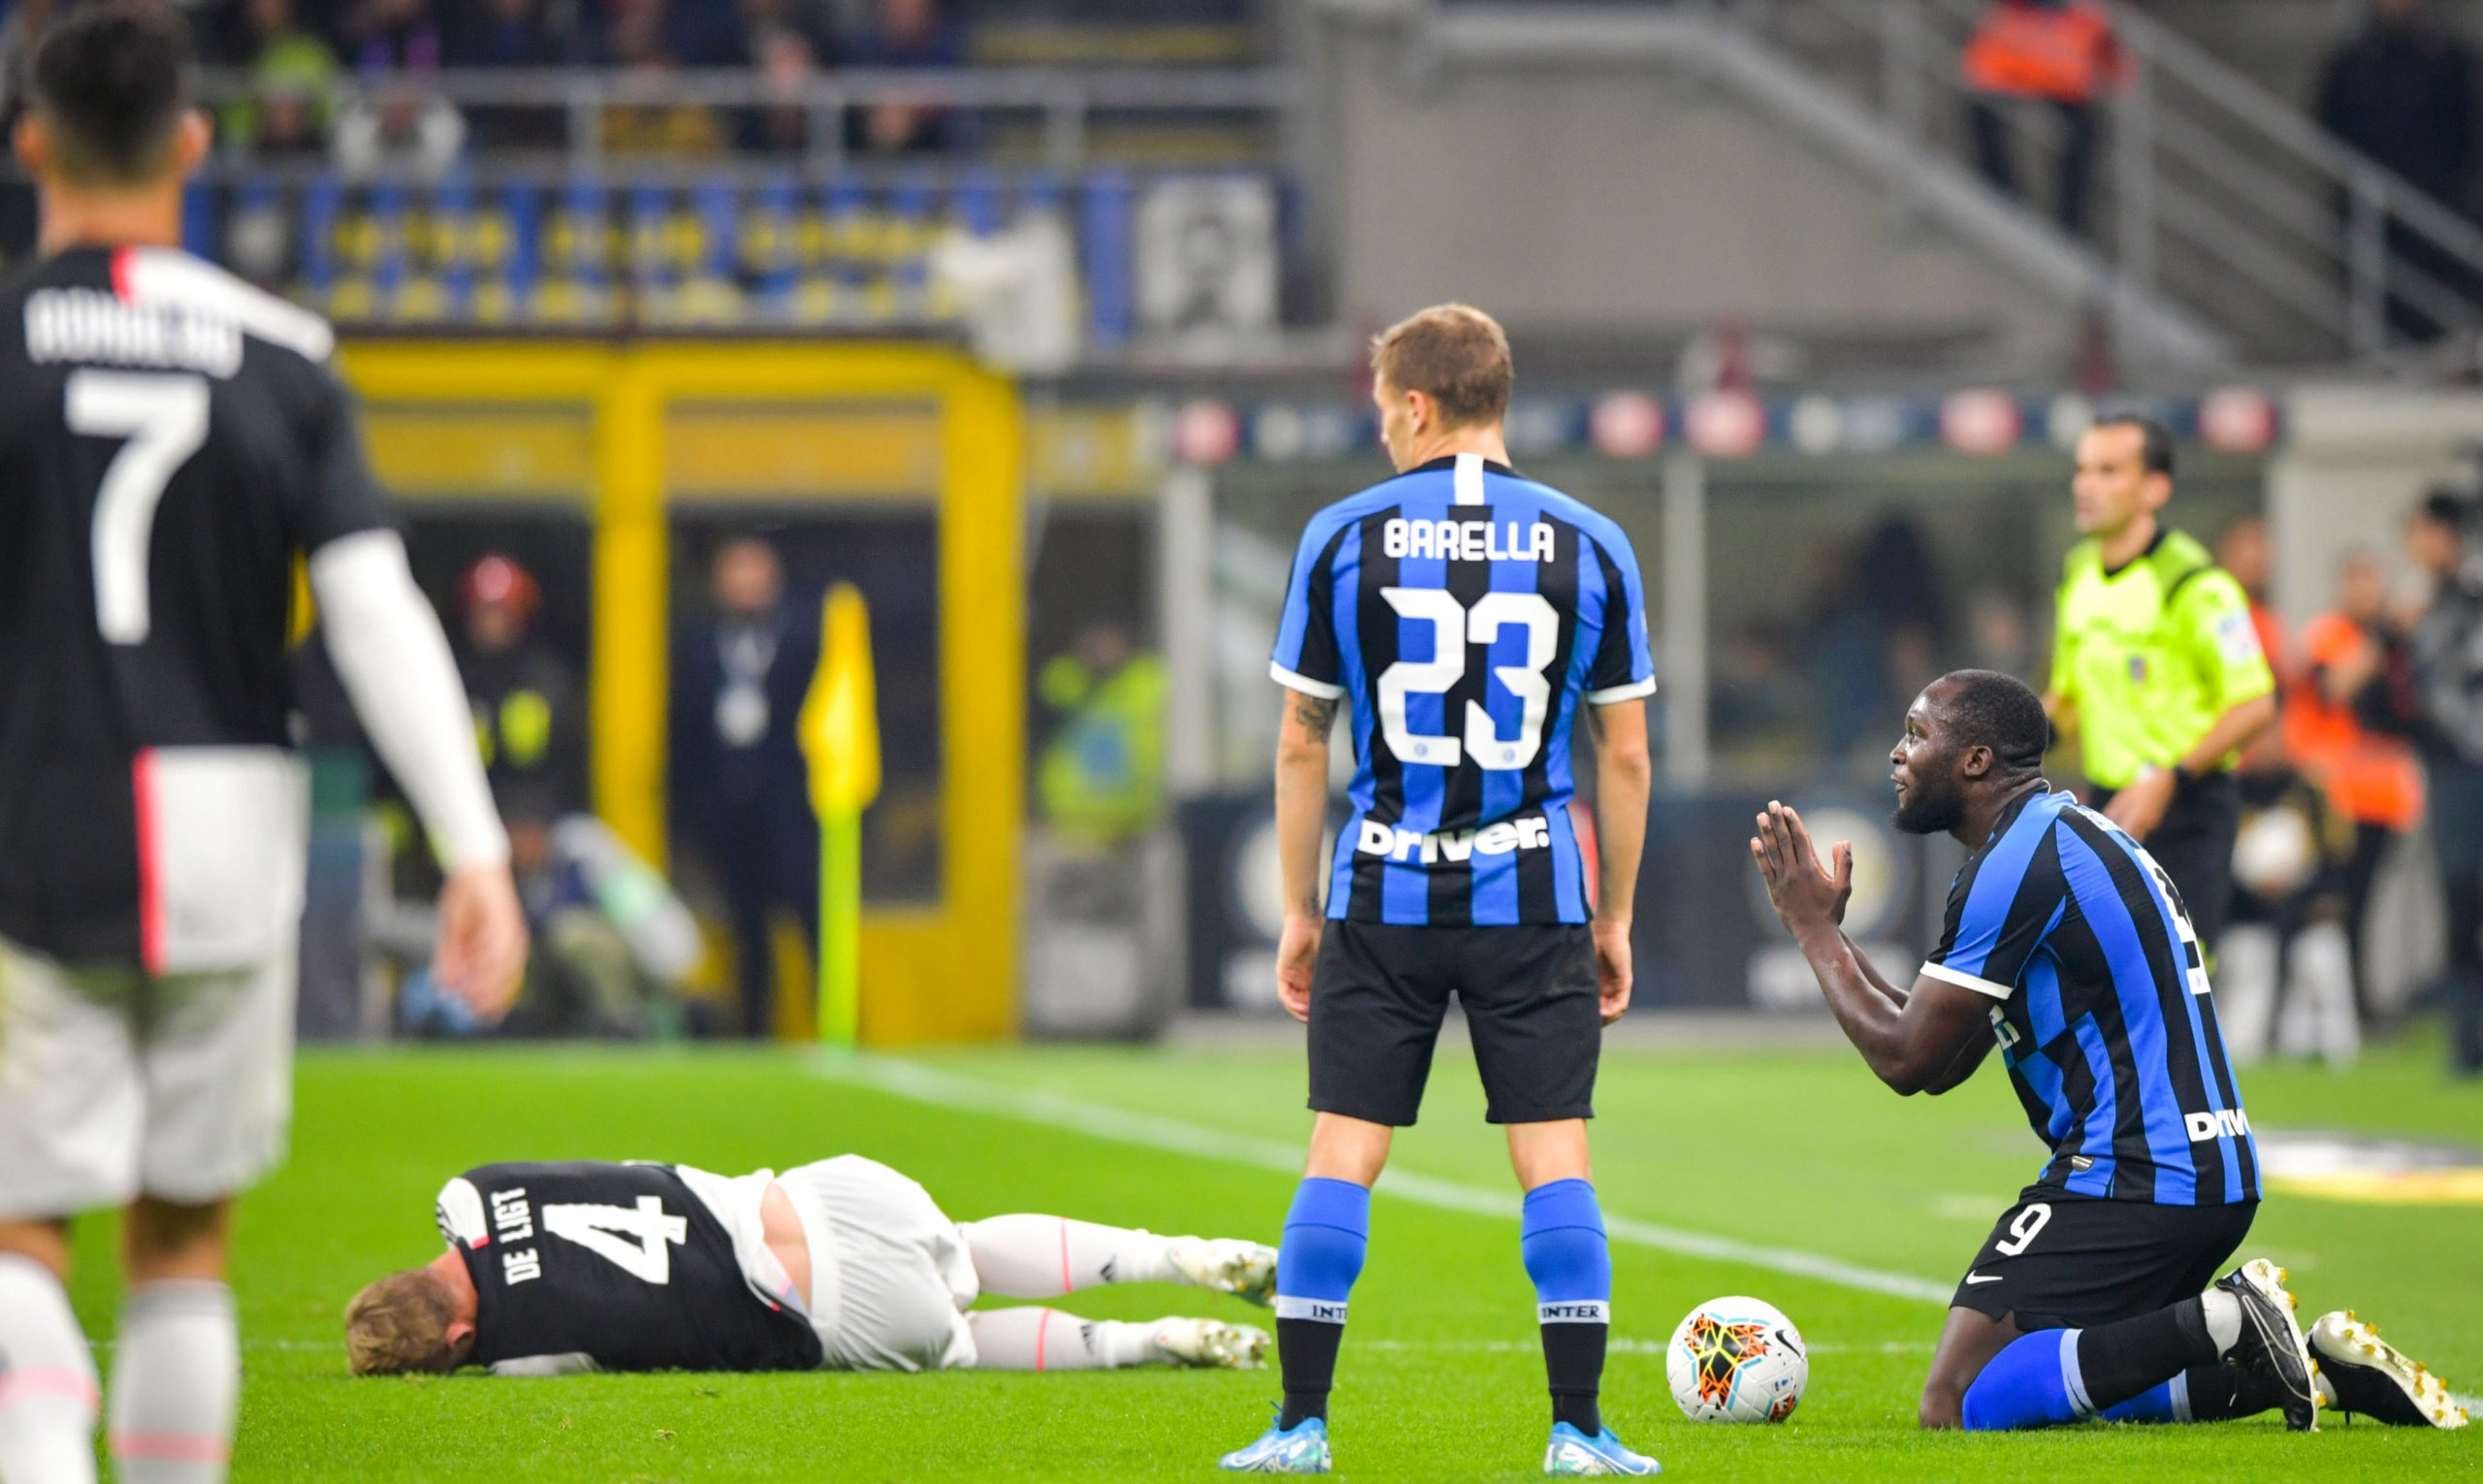 Romelu Lukaku & Cristiano Ronaldo playing the big Serie A game between Internazionale and Juventus